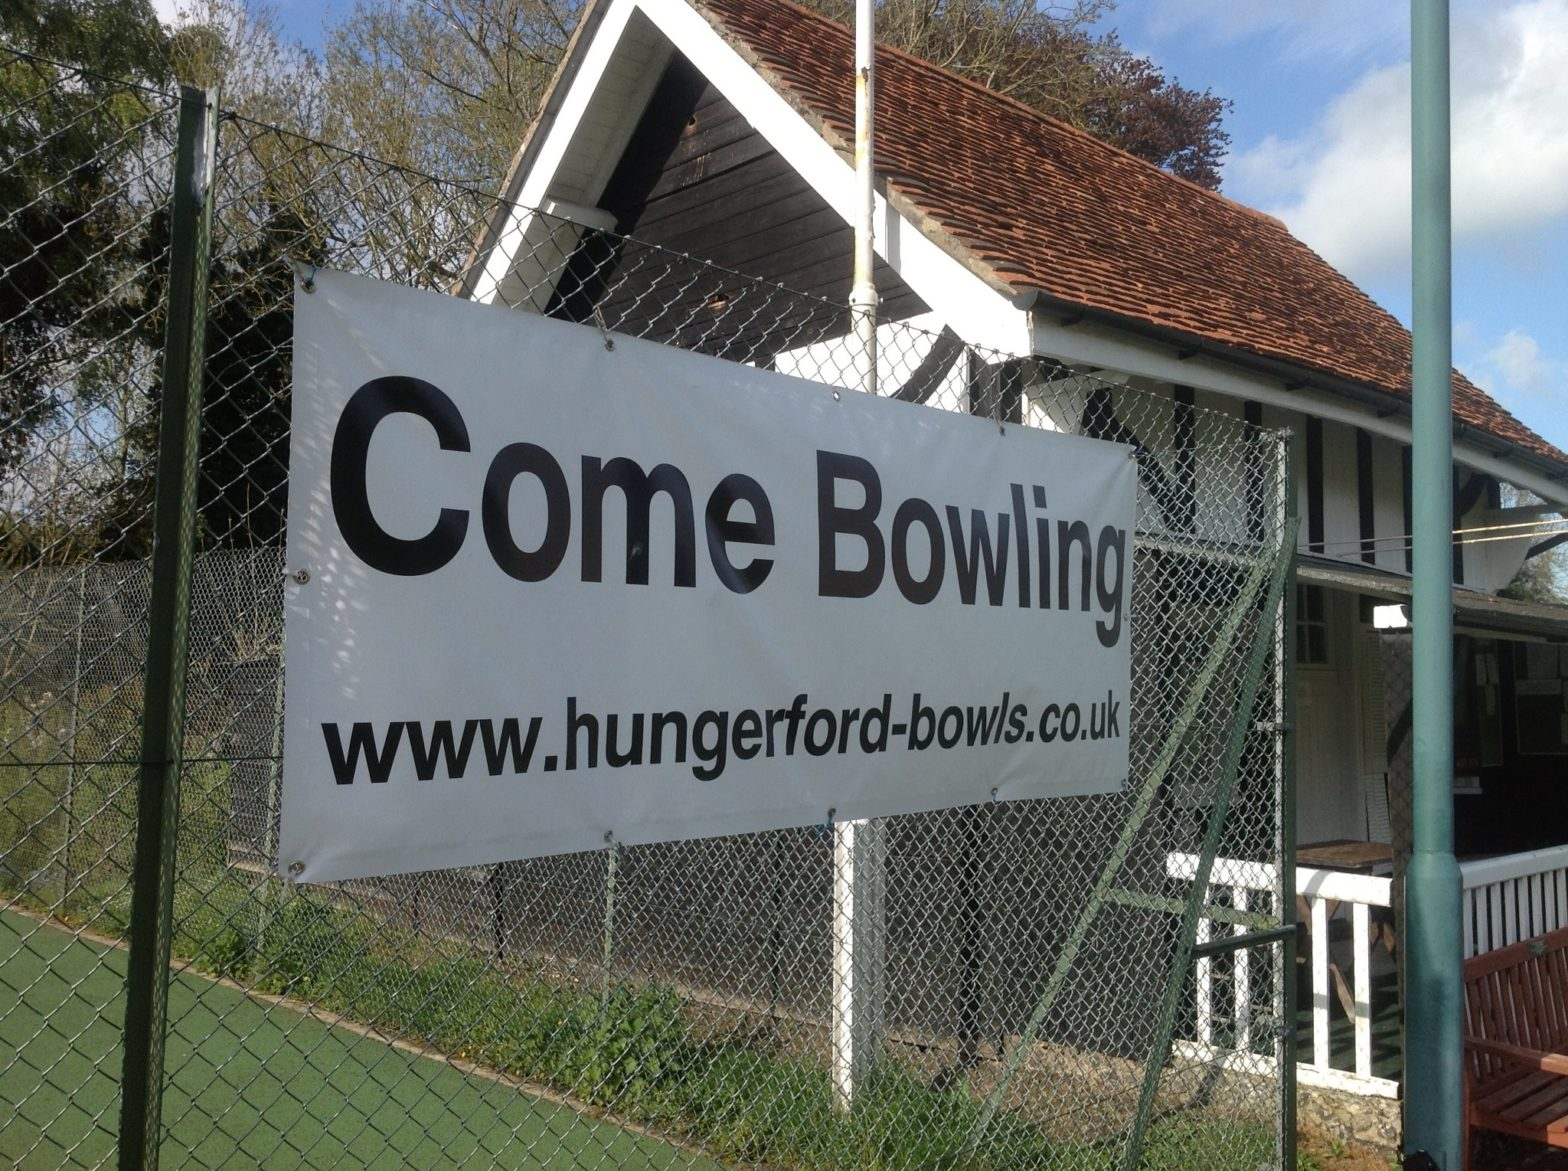 Poster inviting you to come bowling